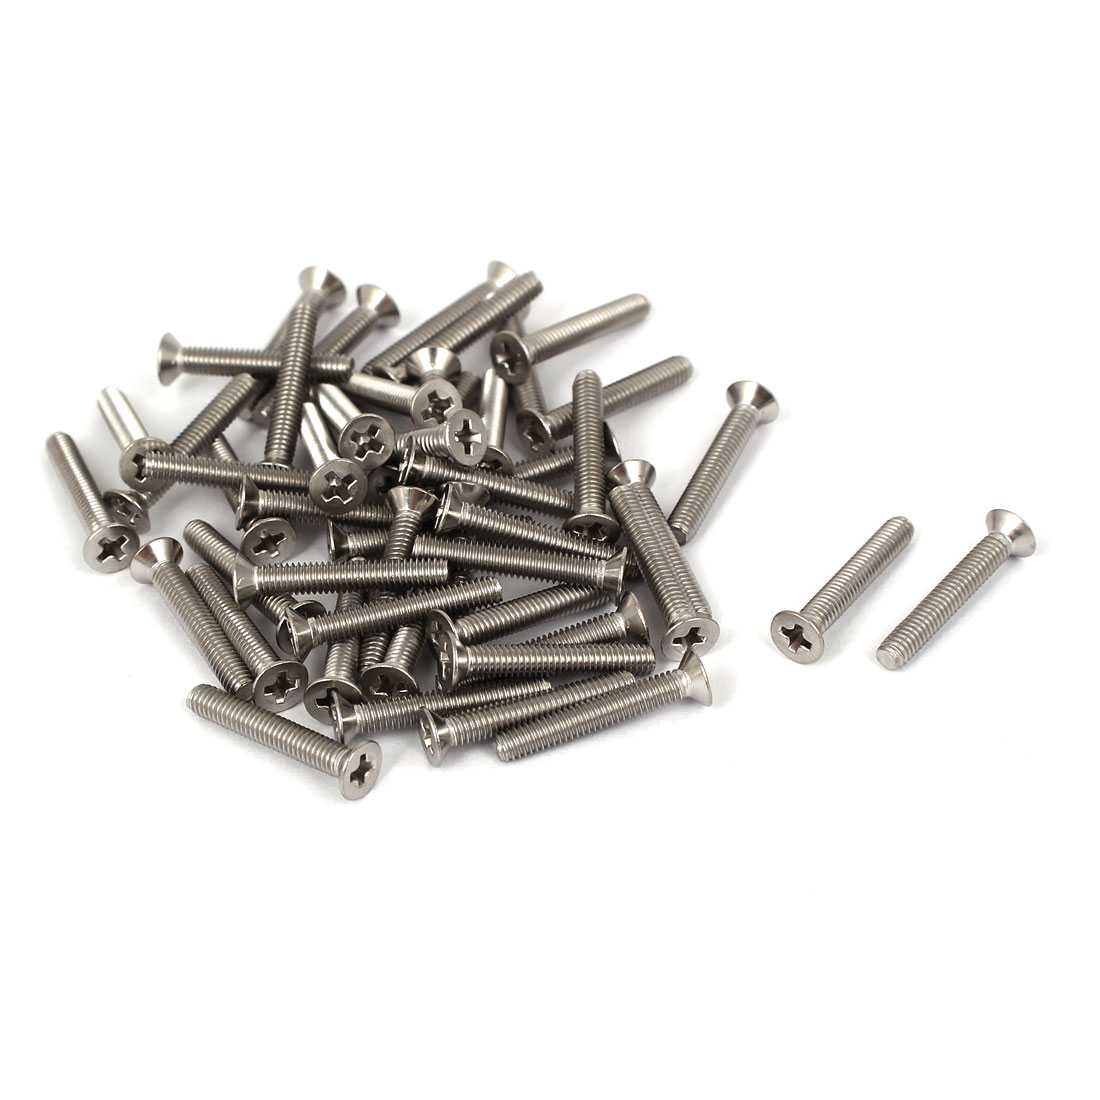 50 Pcs M2.5x16mm 316 Stainless Steel Flat Head Phillips Machine Screws Fasteners